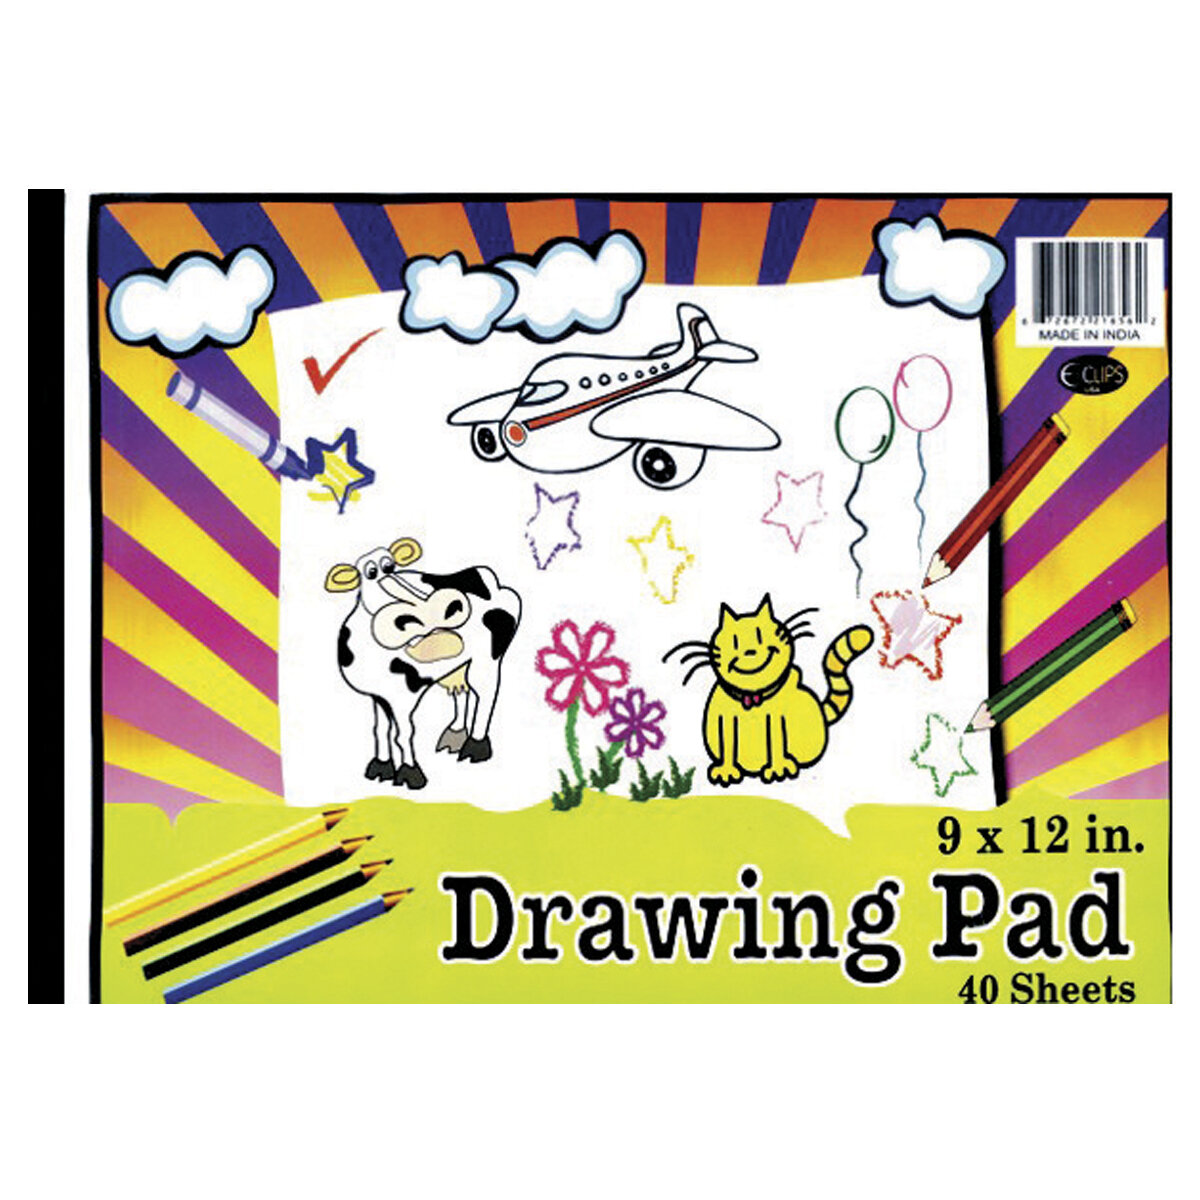 Drawing Pad 9X12, 40 Sheets